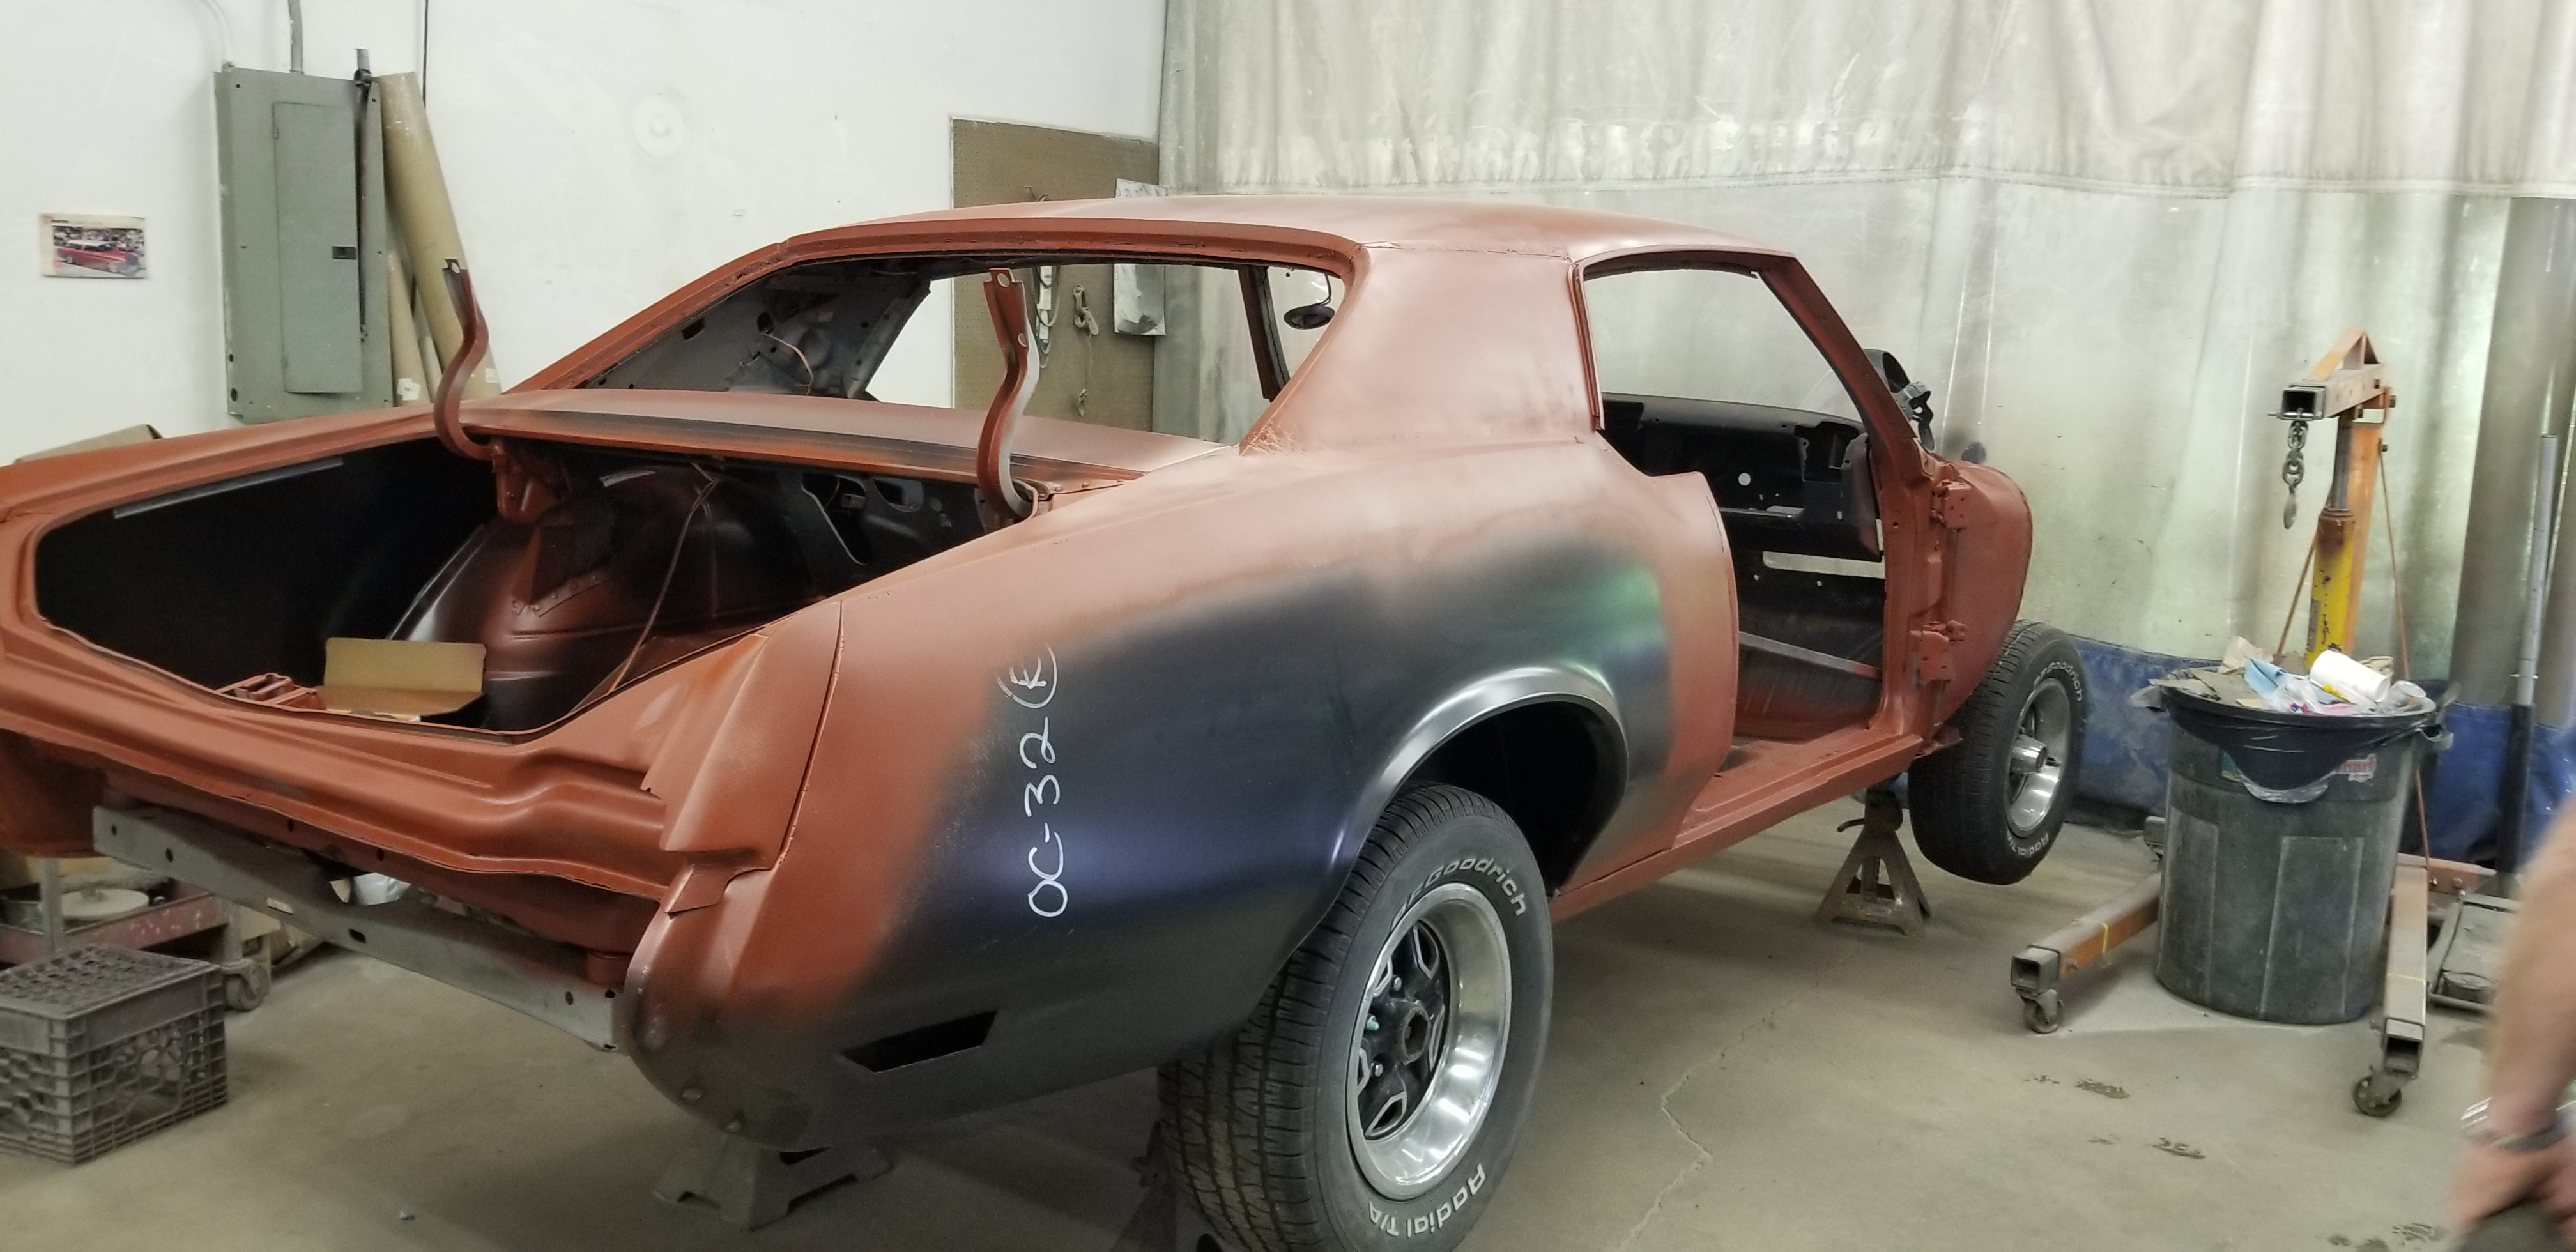 70 Cutlass Restoration